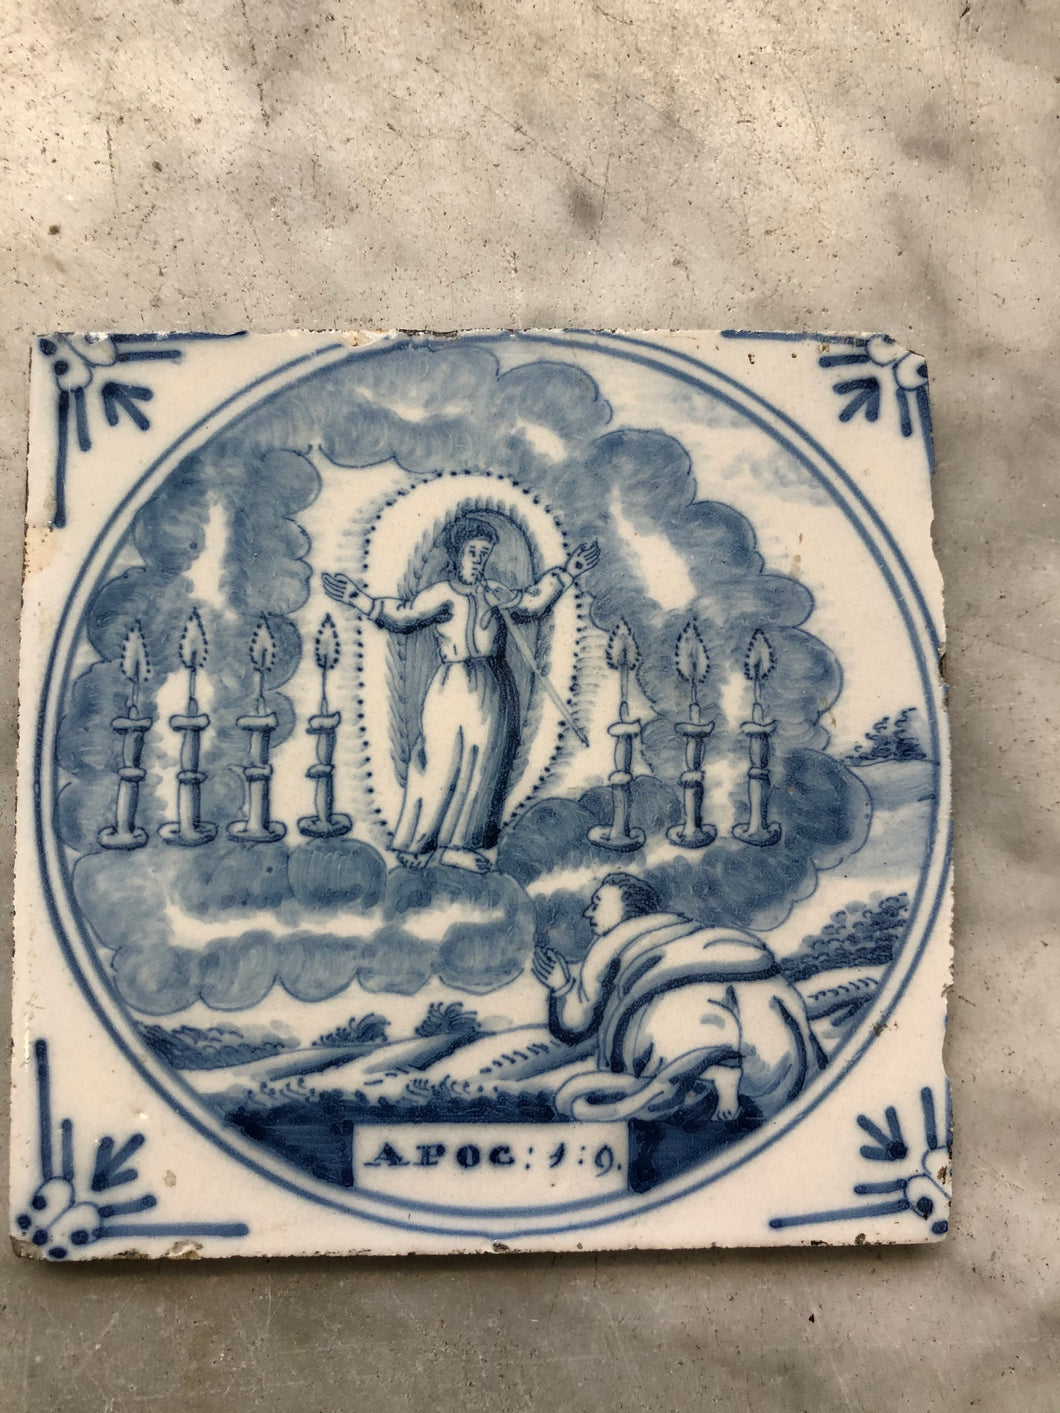 Rare bibical Delft handpainted tile made around 1760